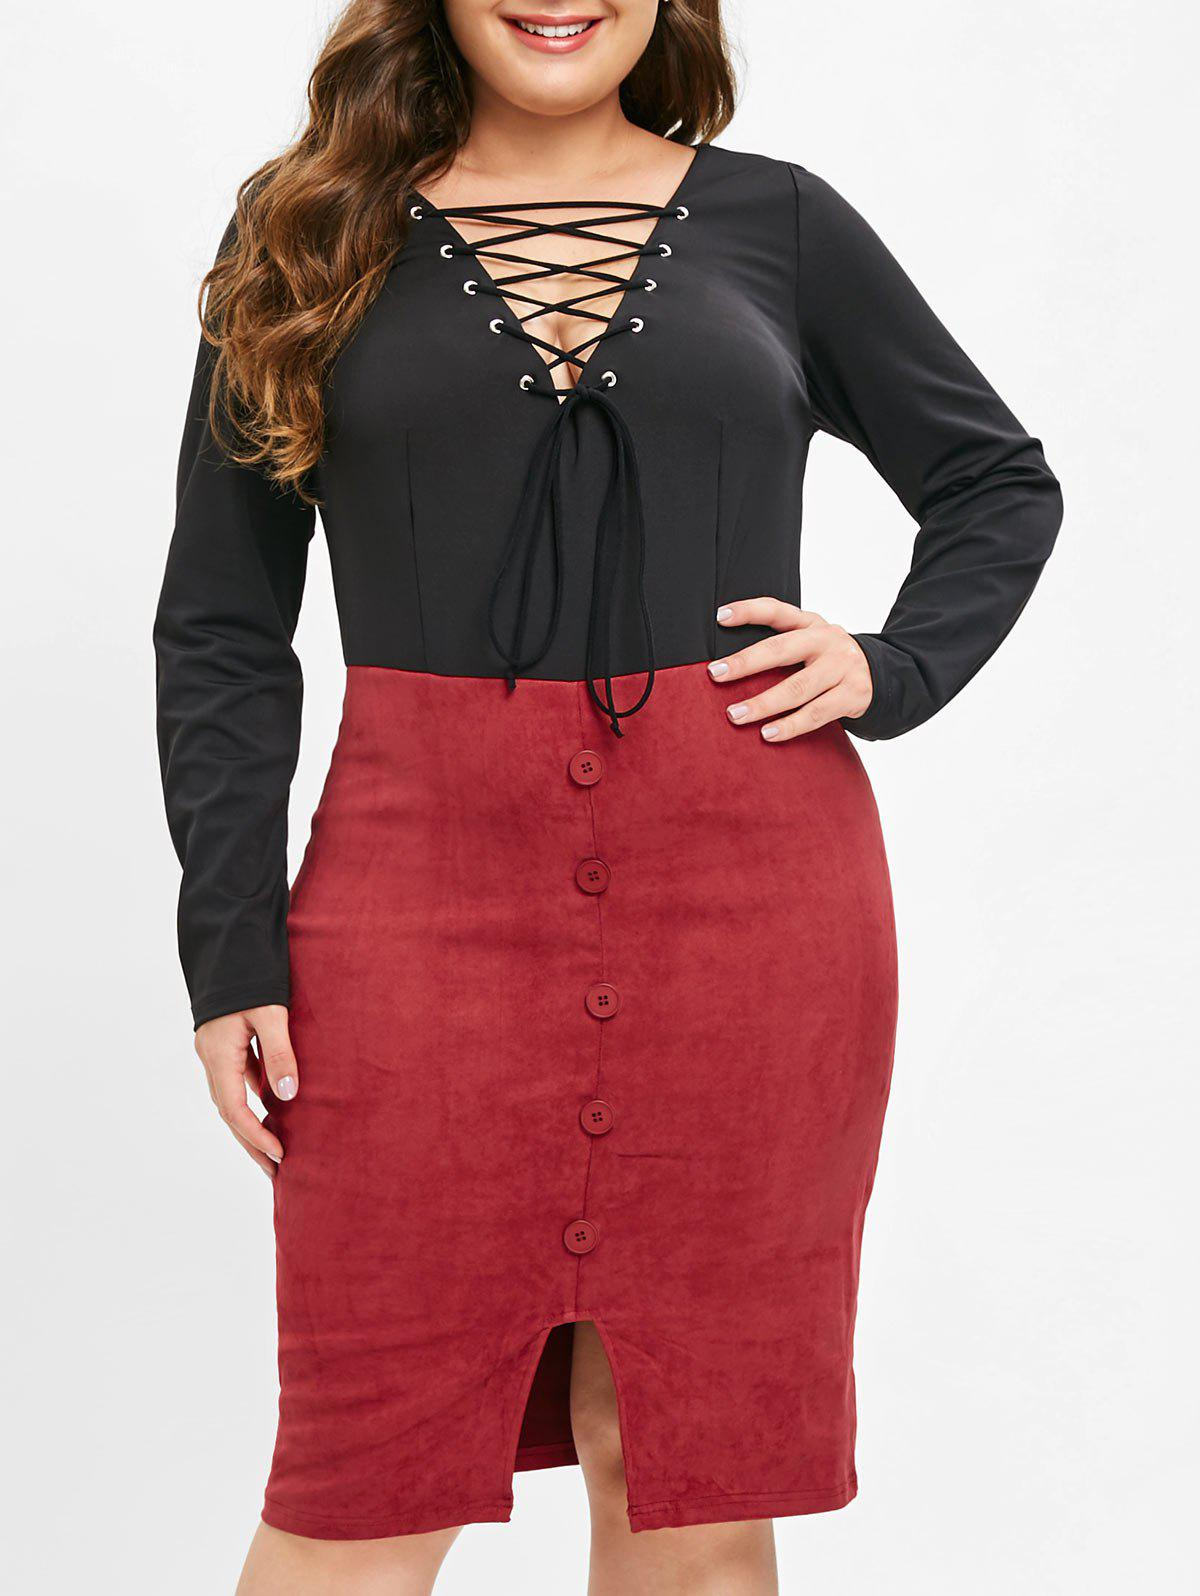 Fancy Plus Size Long Sleeves Bodycon Dress with Lace Up